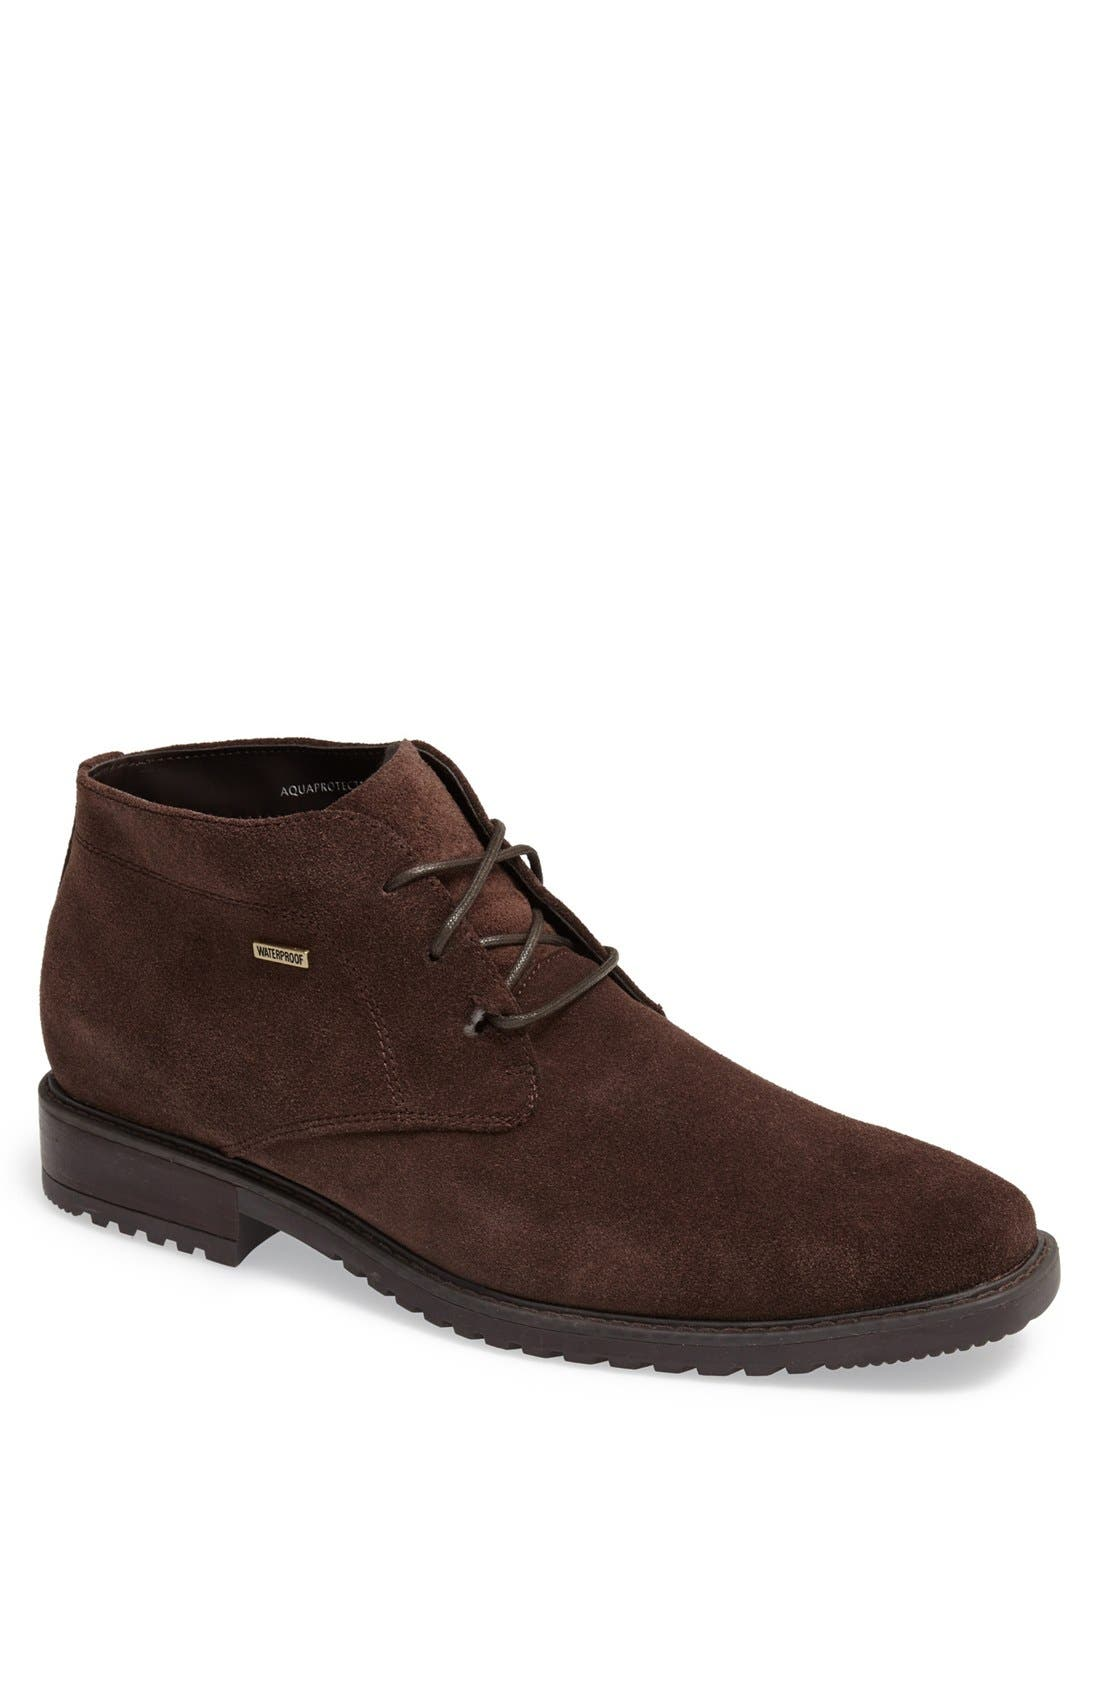 'Griffin' Waterproof Suede Chukka Boot,                             Main thumbnail 1, color,                             201